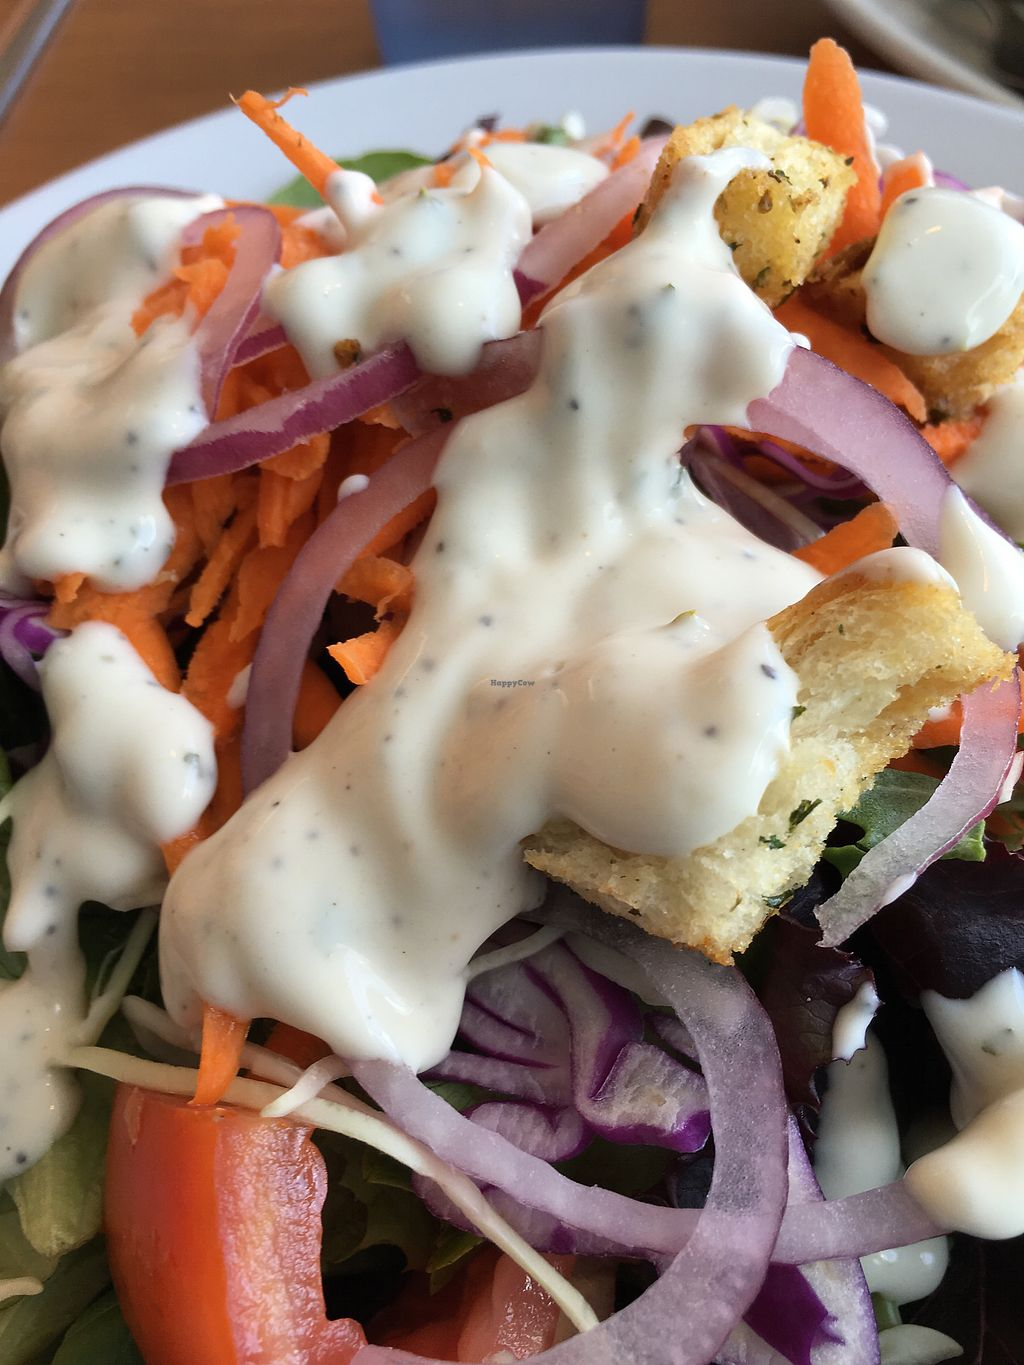 """Photo of Cornbread Cafe  by <a href=""""/members/profile/Veg4Jay"""">Veg4Jay</a> <br/>Salad with Ranch <br/> August 5, 2017  - <a href='/contact/abuse/image/27352/289392'>Report</a>"""